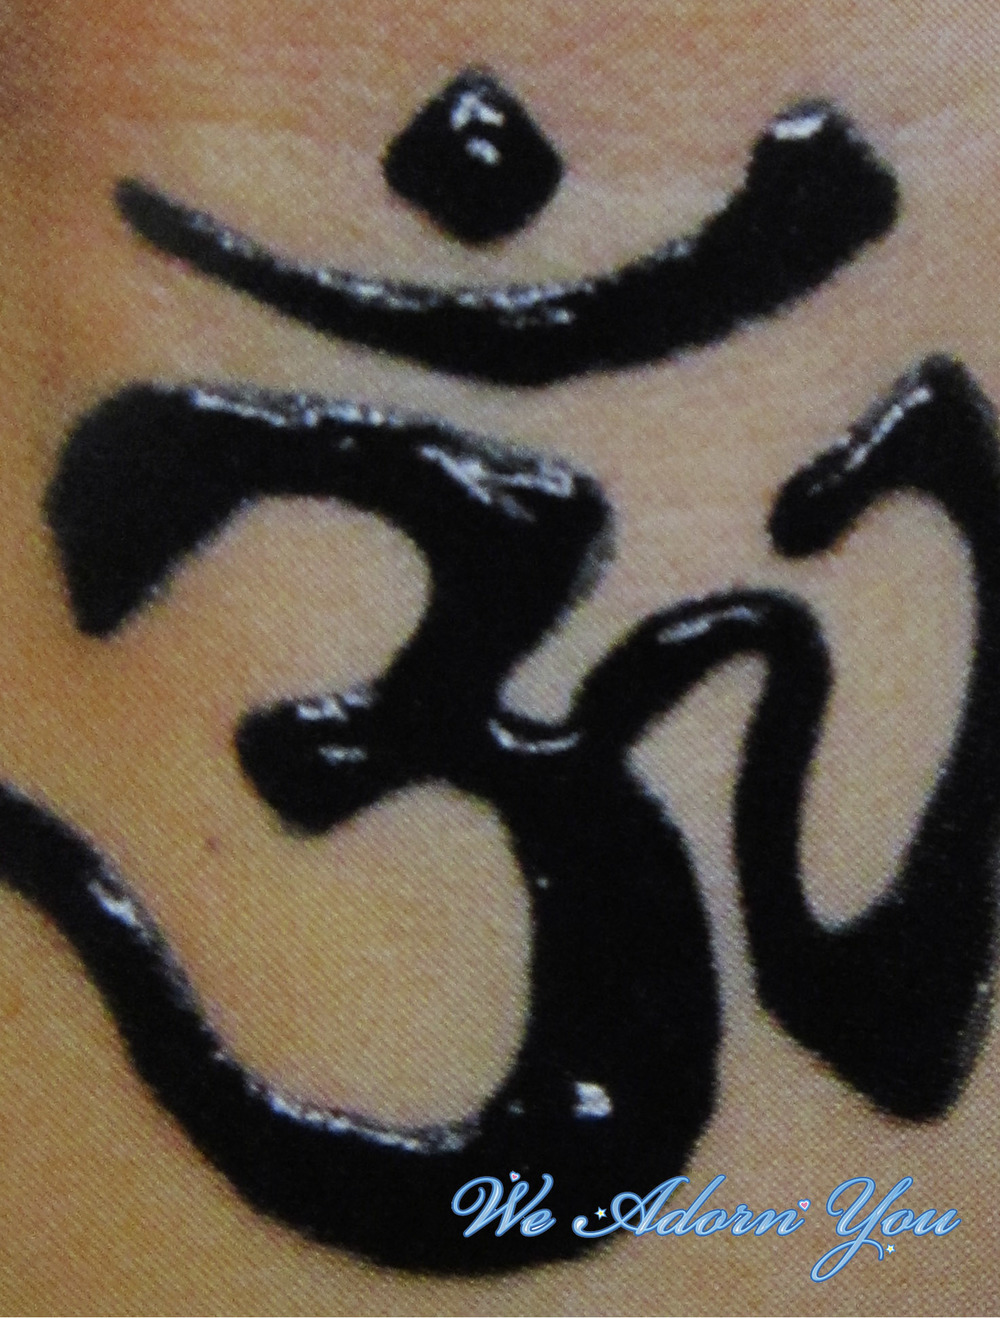 Jagua Ohm - We Adorn You.jpg